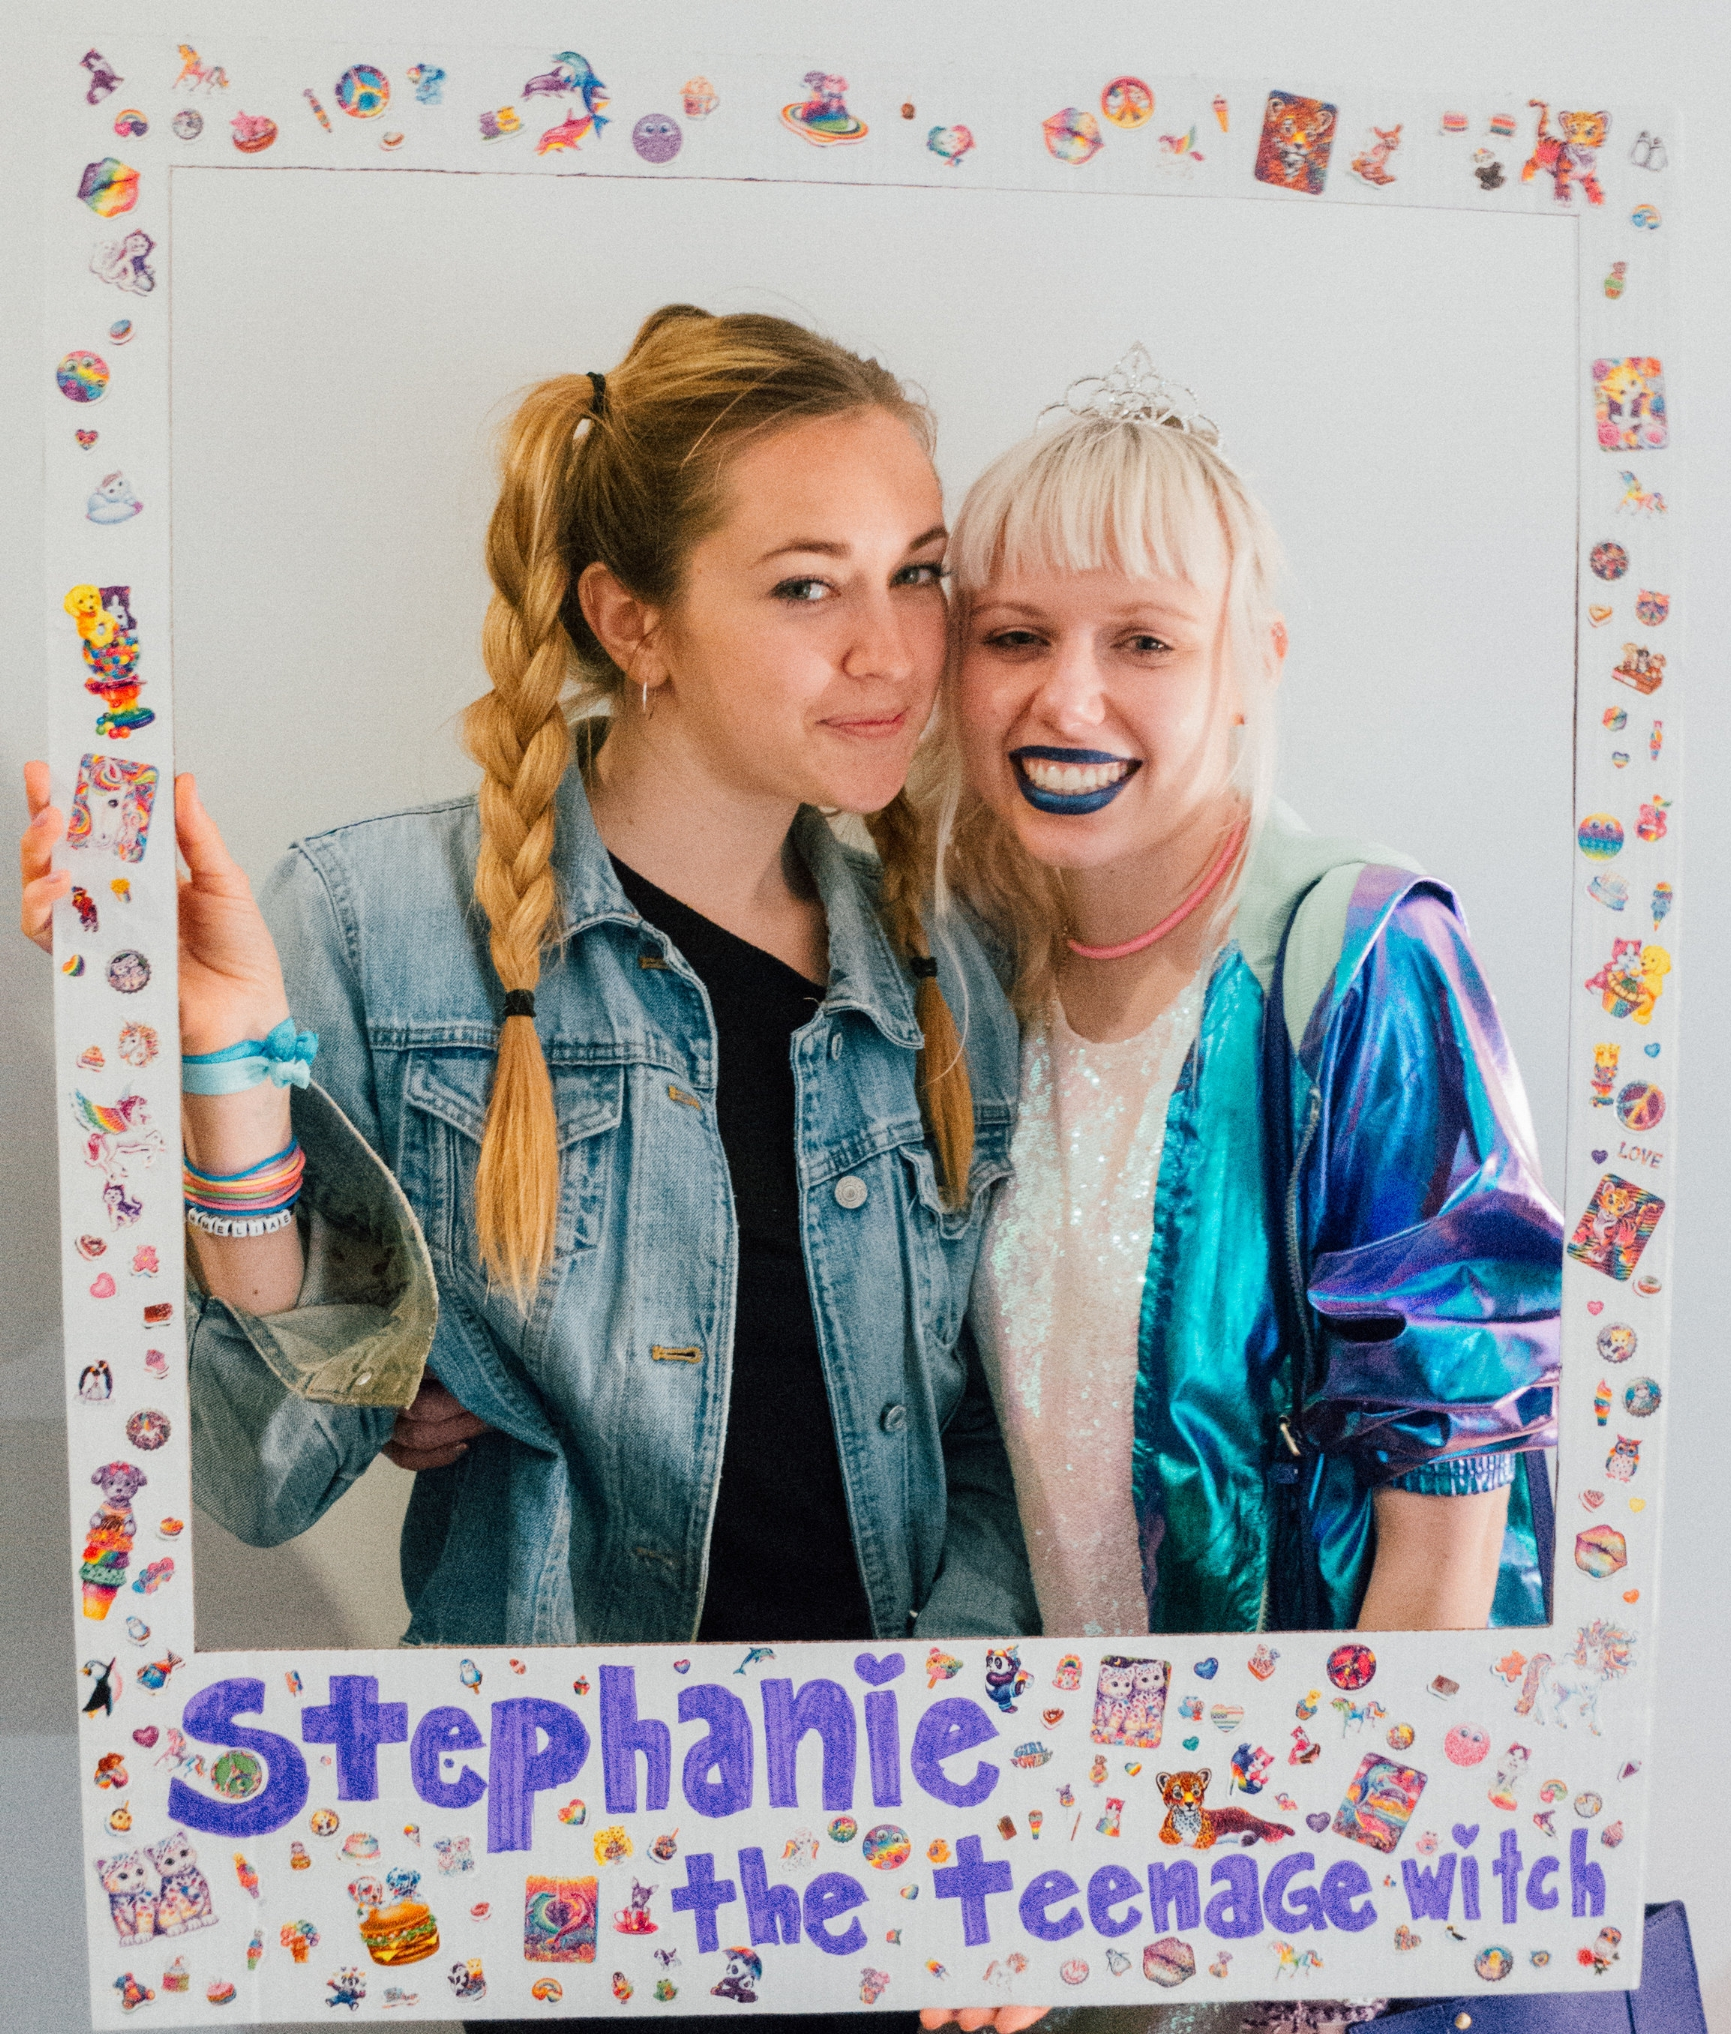 Photo booths: they're fun, they're easy, and mine were portable! I actually had some of the most fun making these giant Polaroid cut outs.